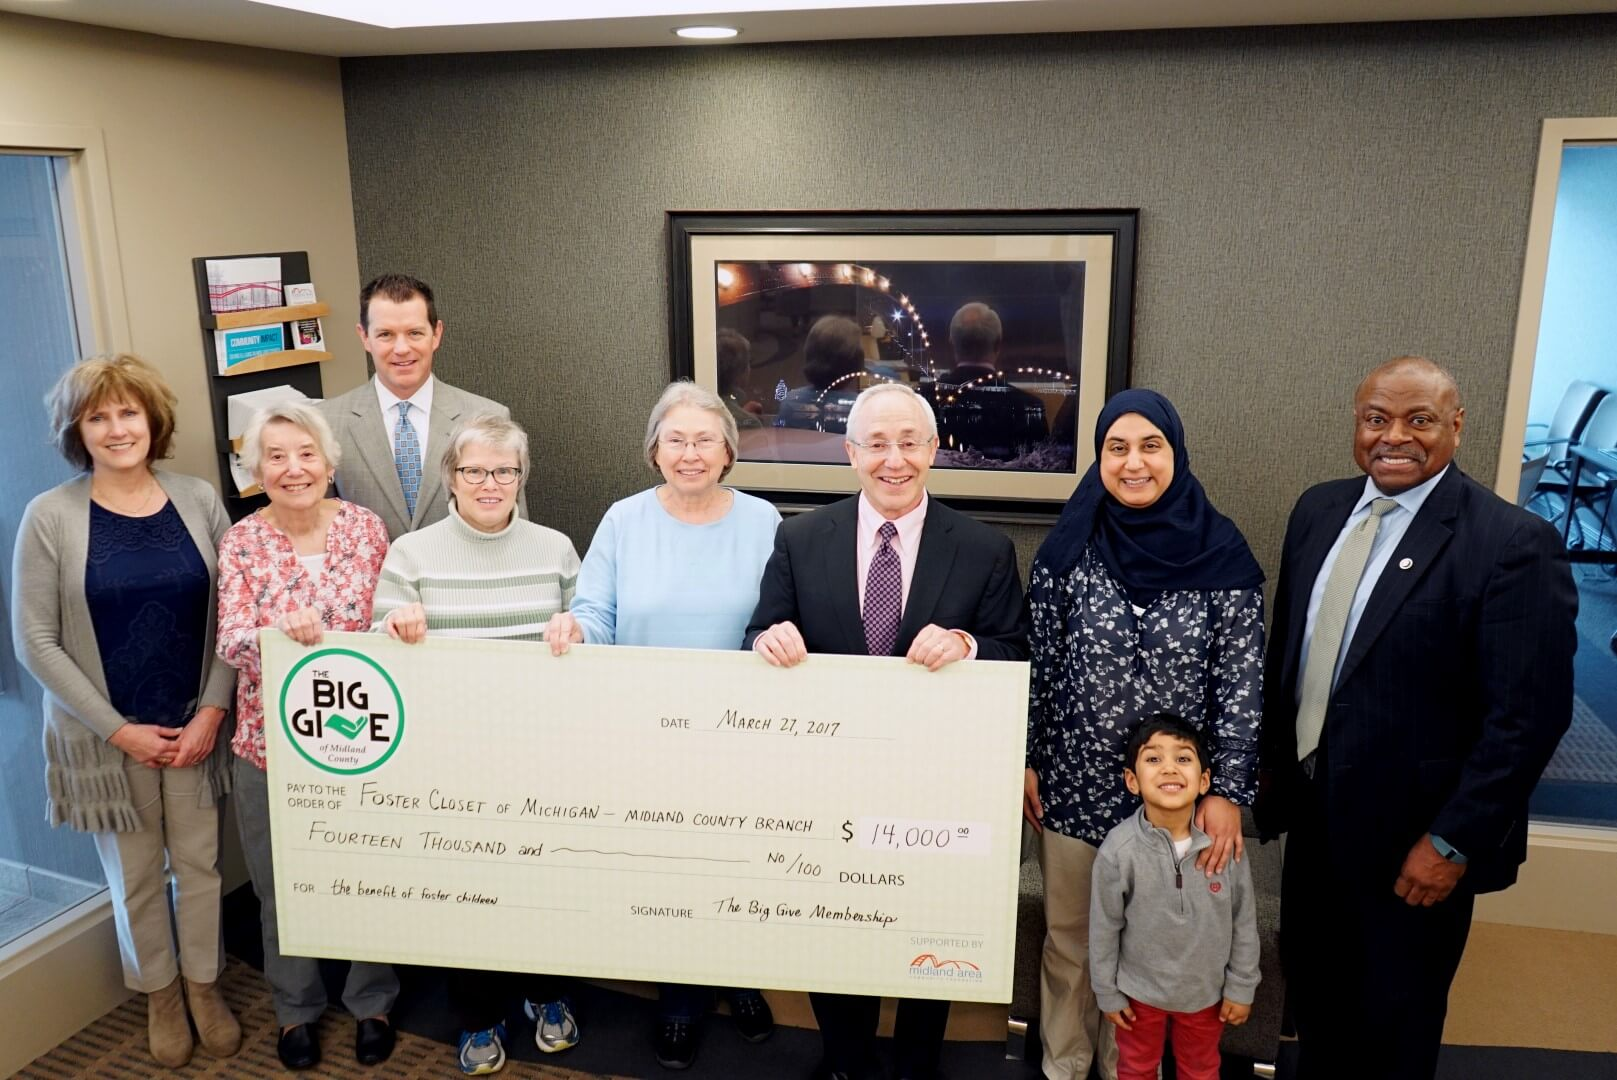 Members of The Big Give pose with a check for Foster Closet of Michigan